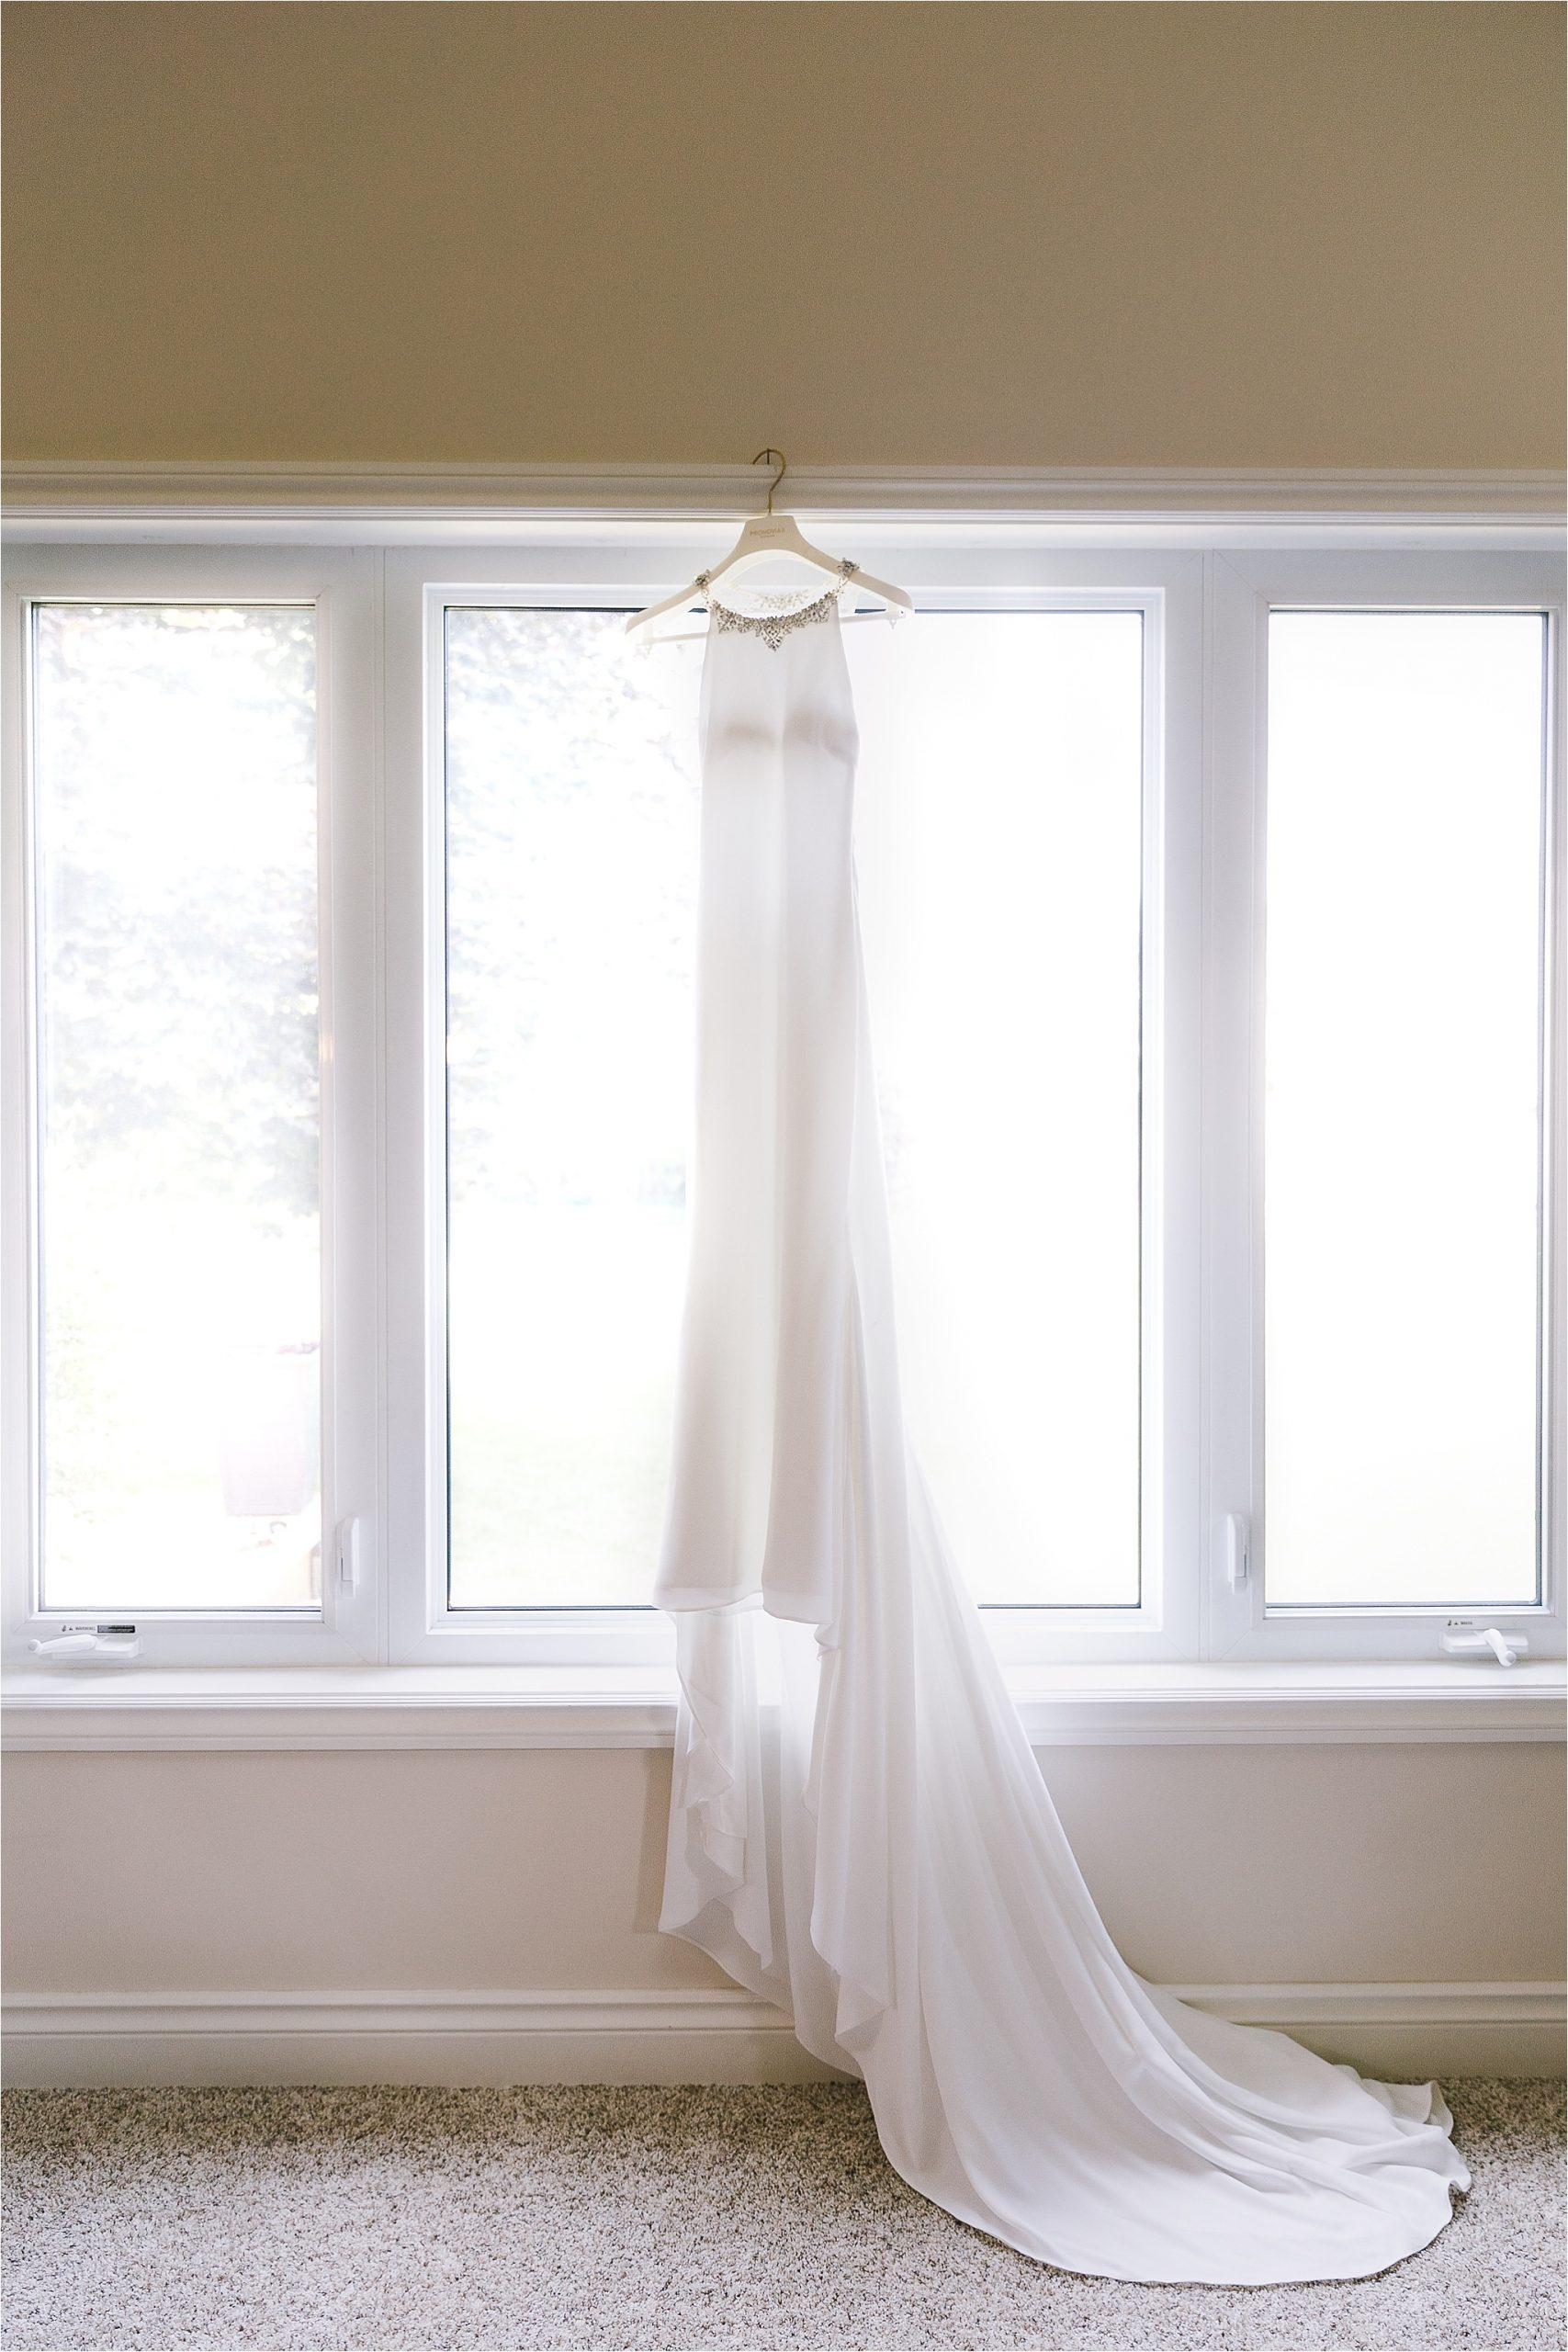 Bridal gown wedding dress from Provonias hanging in front of window